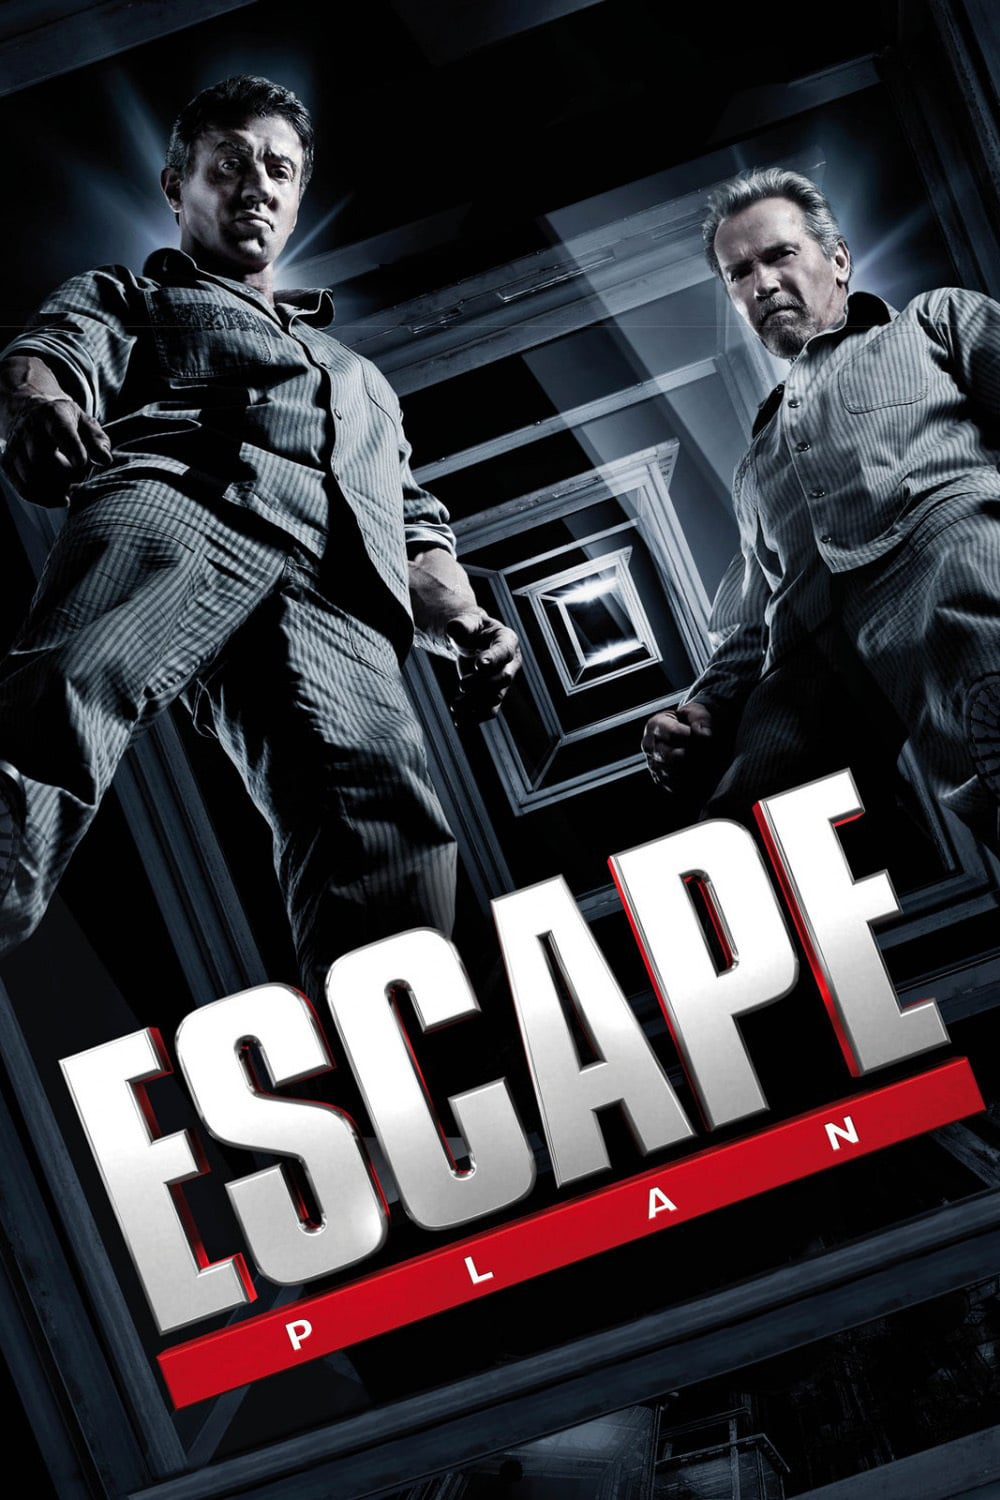 escape plan 2 full movie download in tamilyogi